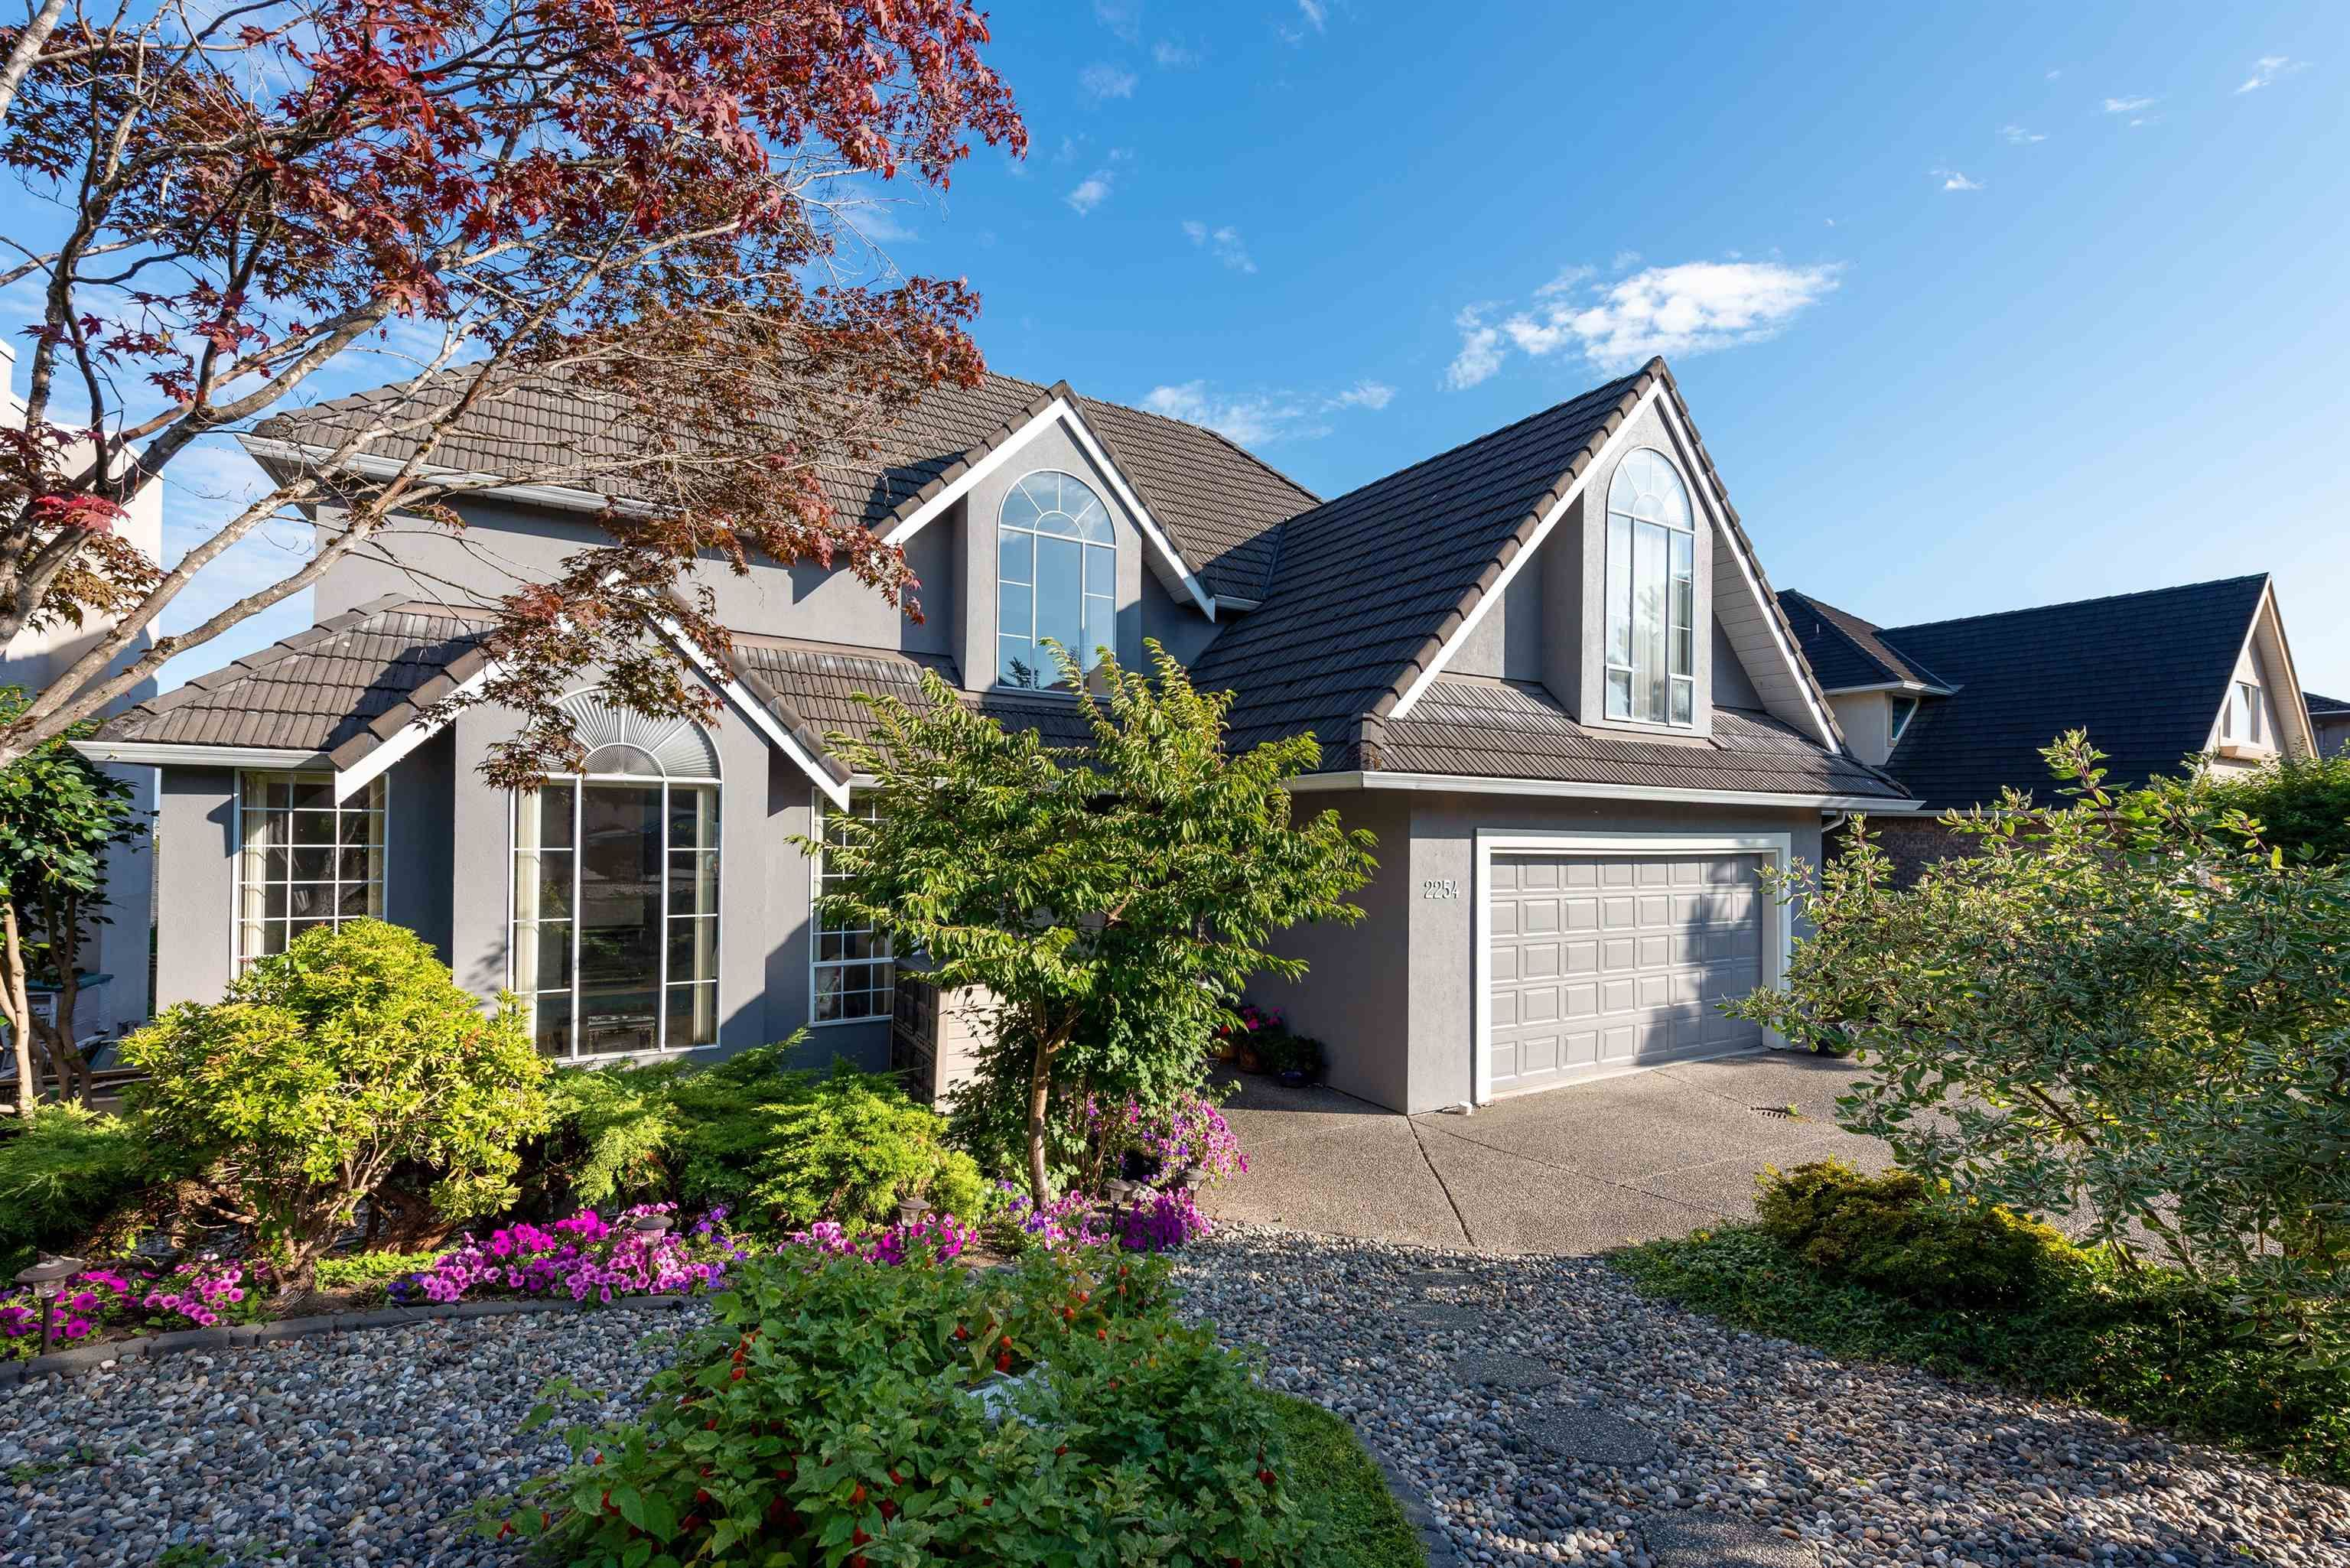 Main Photo: 2254 LECLAIR Drive in Coquitlam: Coquitlam East House for sale : MLS®# R2615178